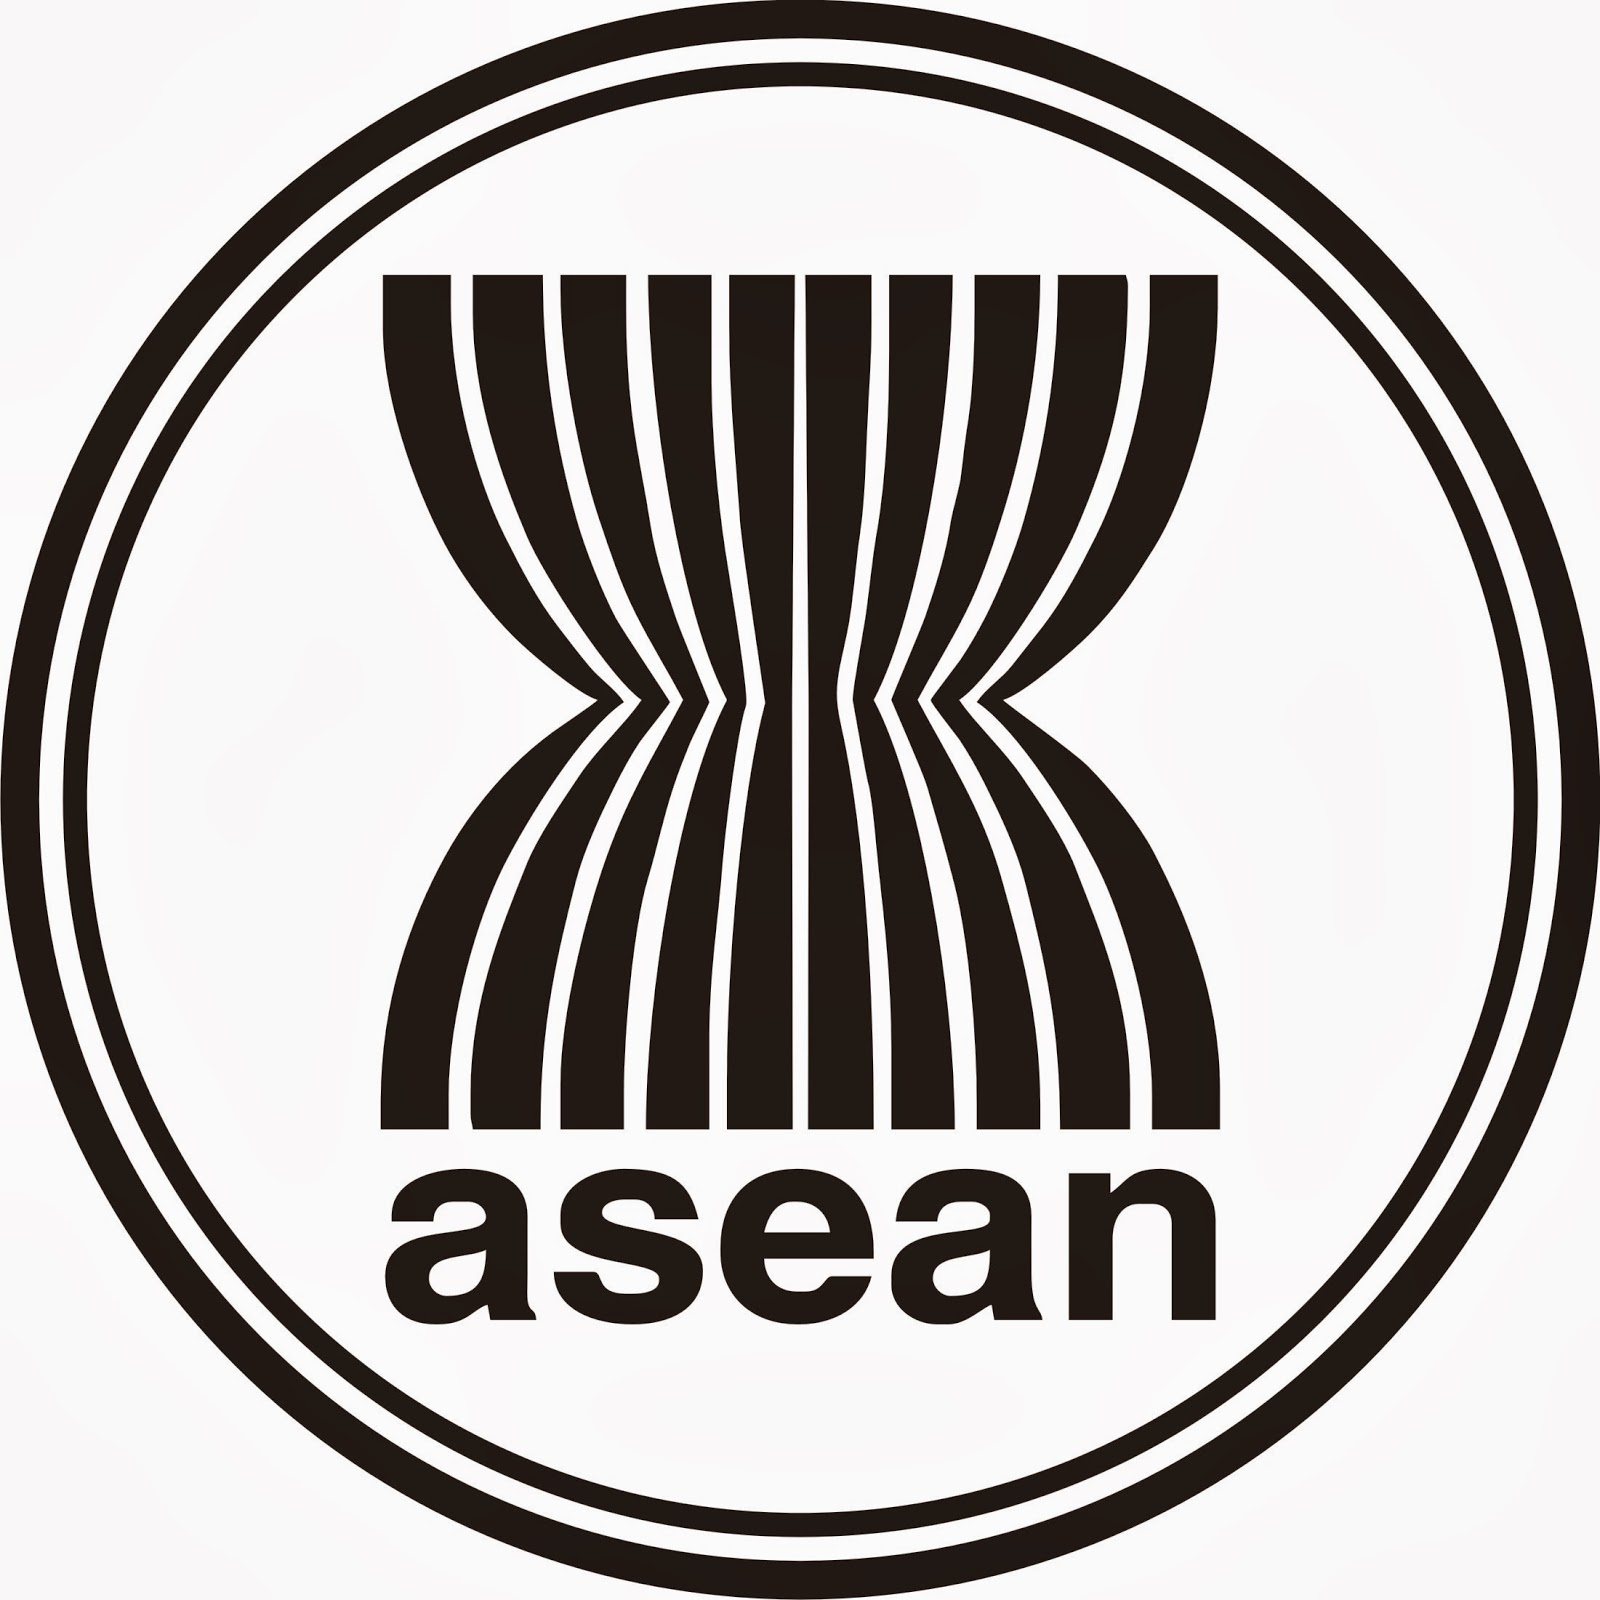 logo asean hitam putih (black and white)